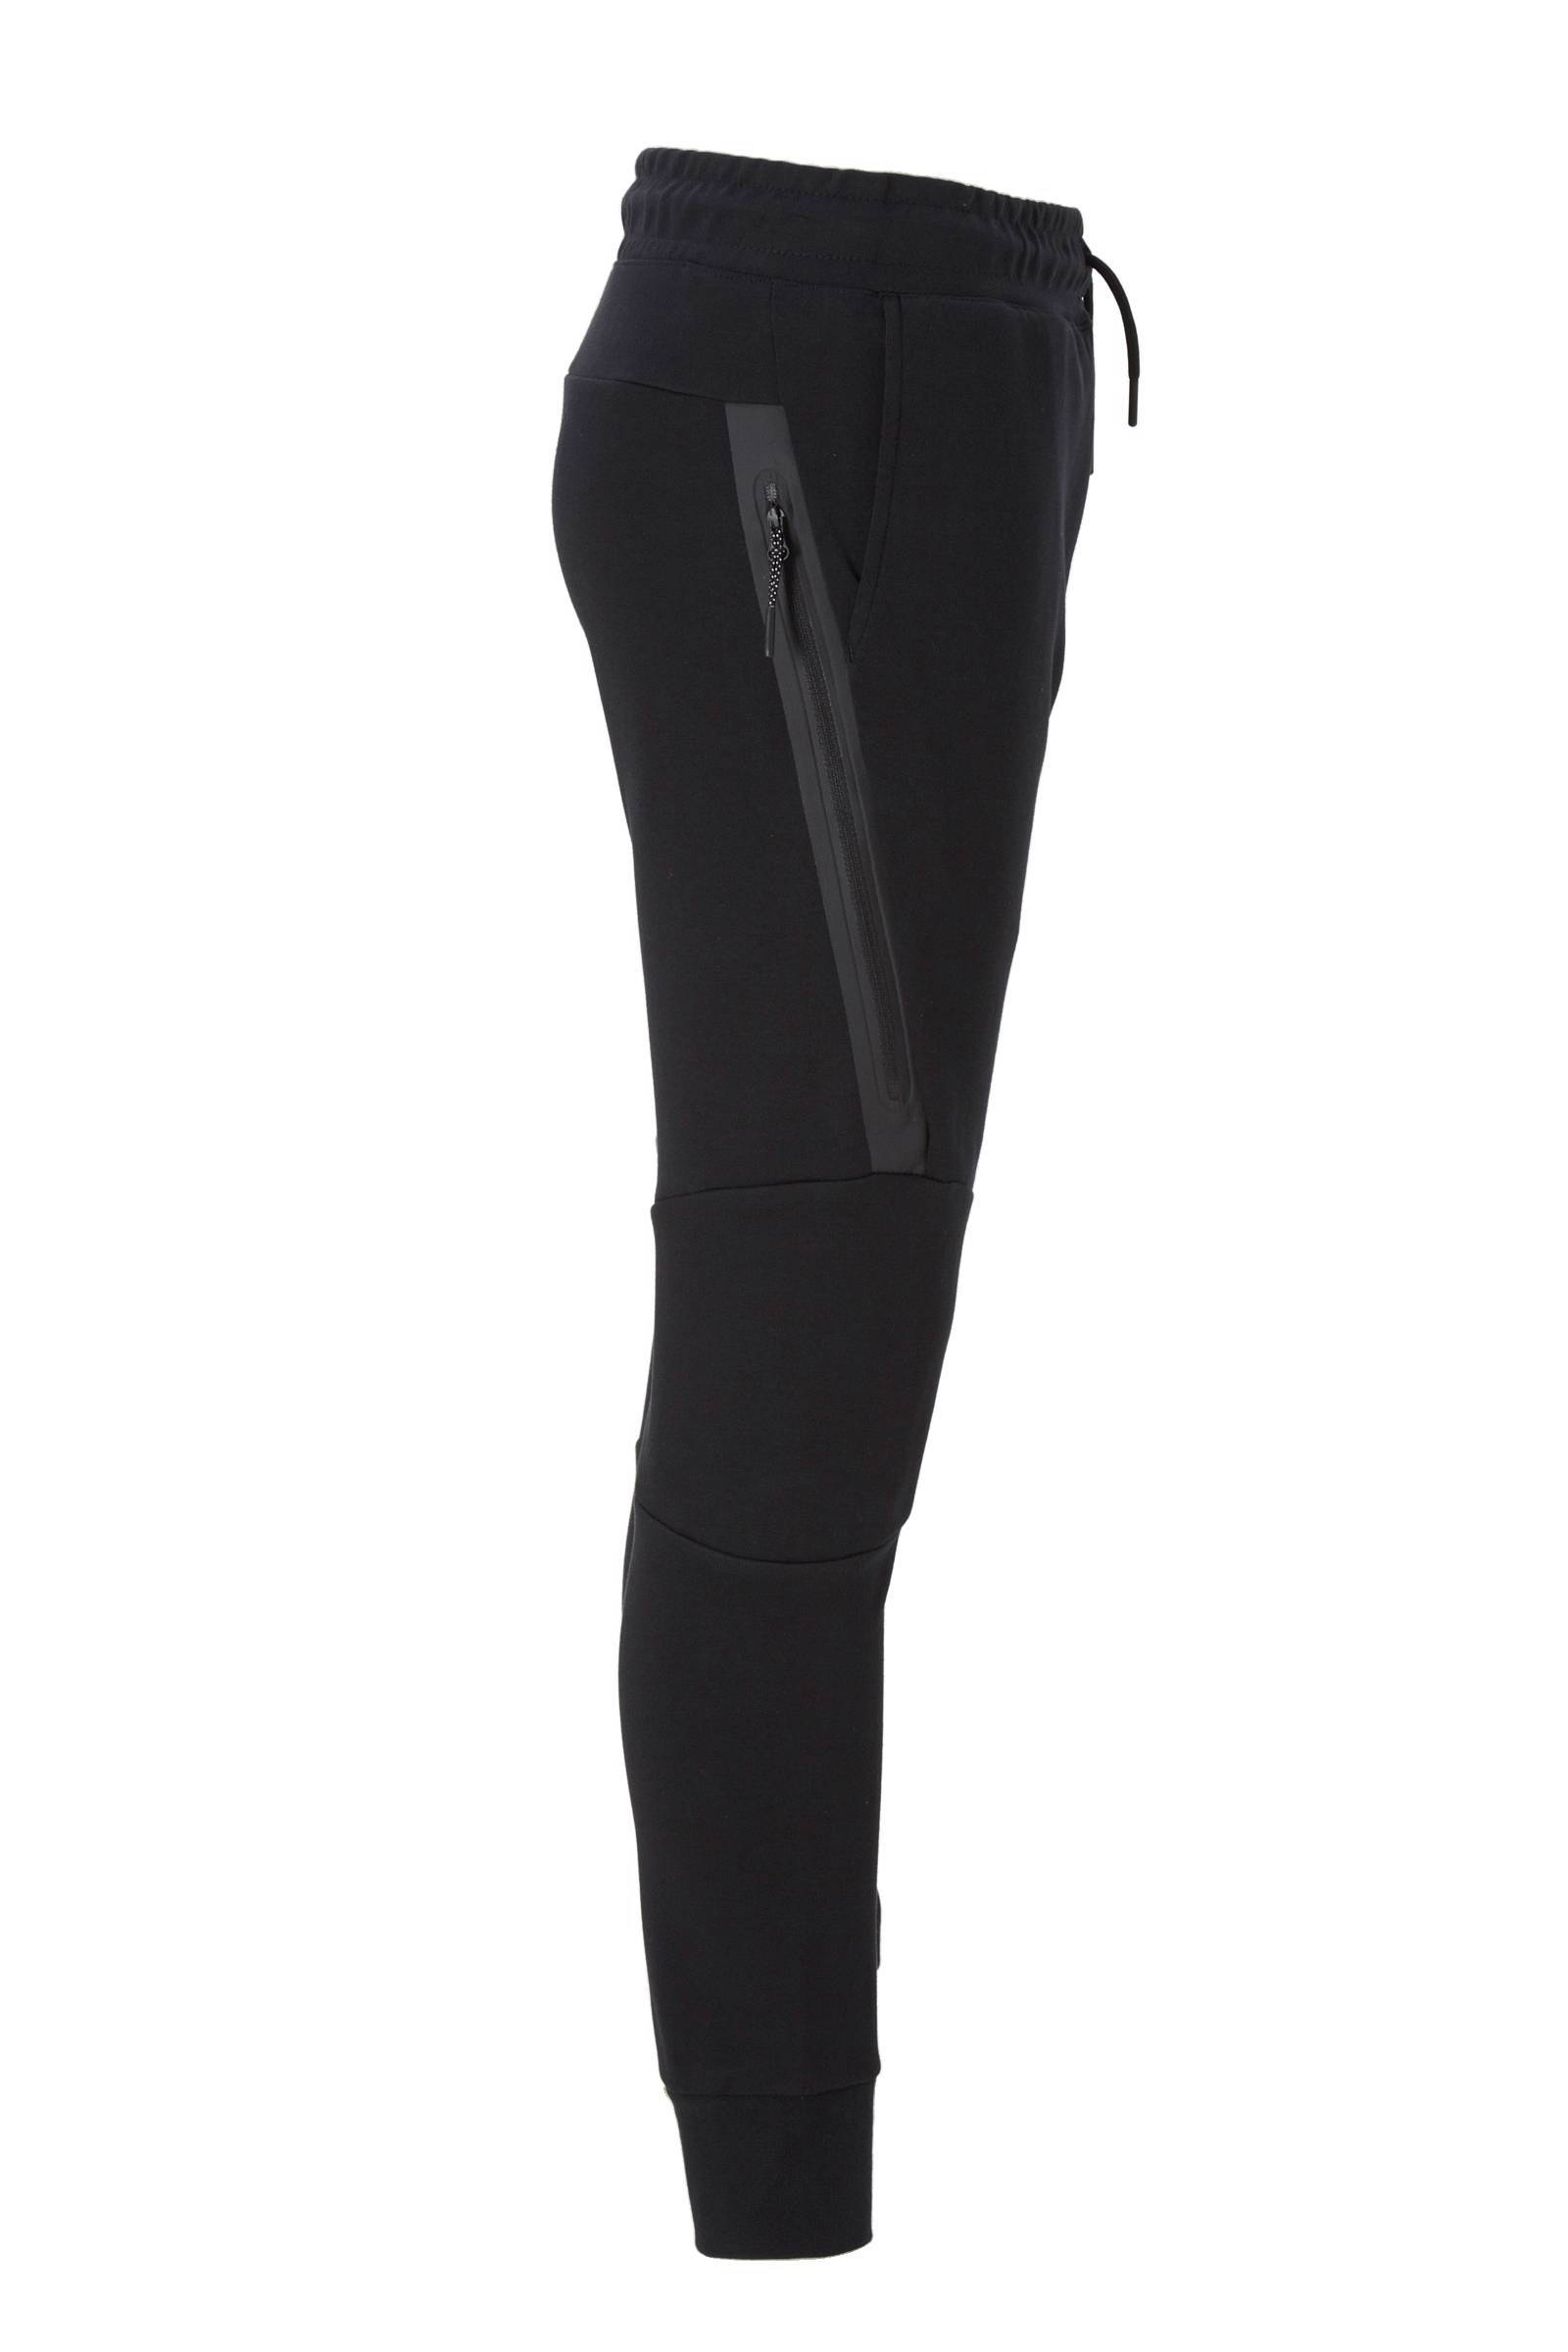 Zwarte Joggingbroek Jongens.Tech Fleece Joggingbroek